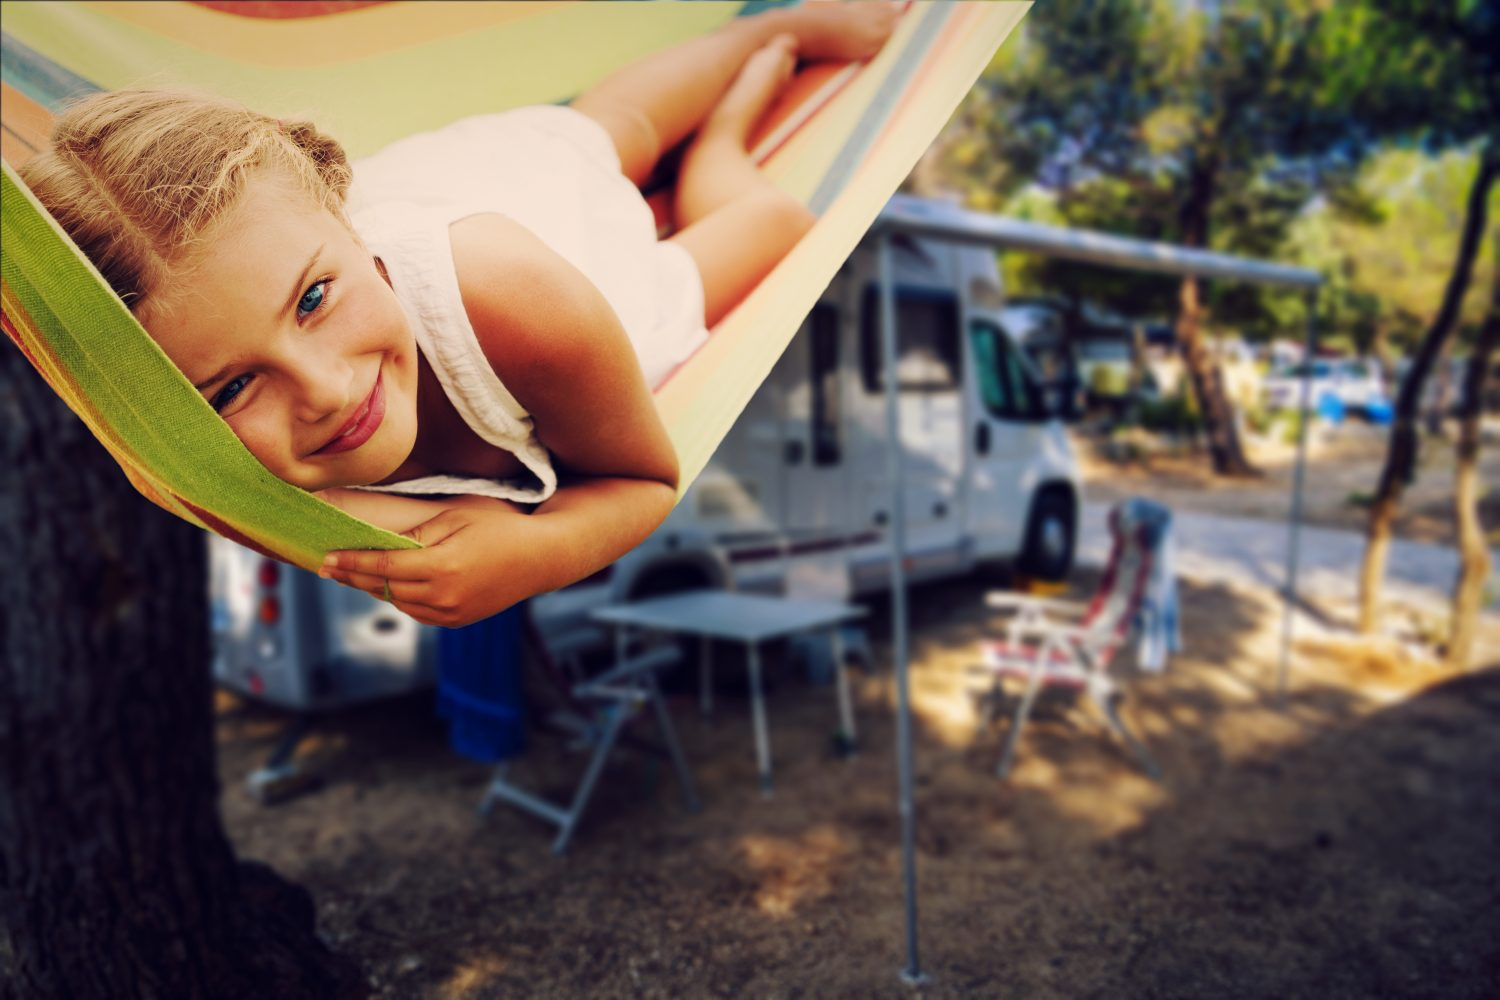 Smiling child enjoys a family RV vacation